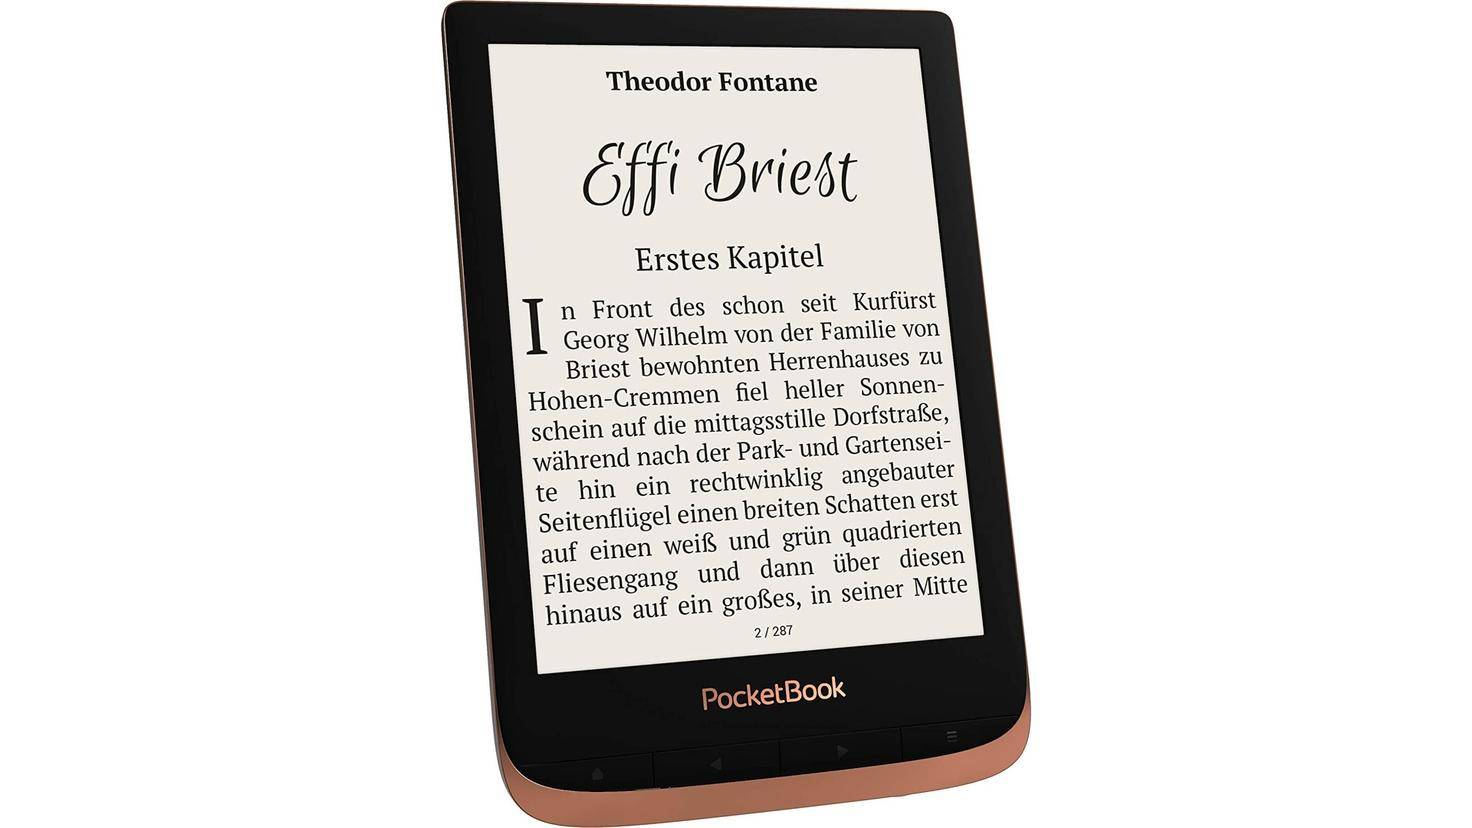 pocketbook-touch-hd-3-e-reader